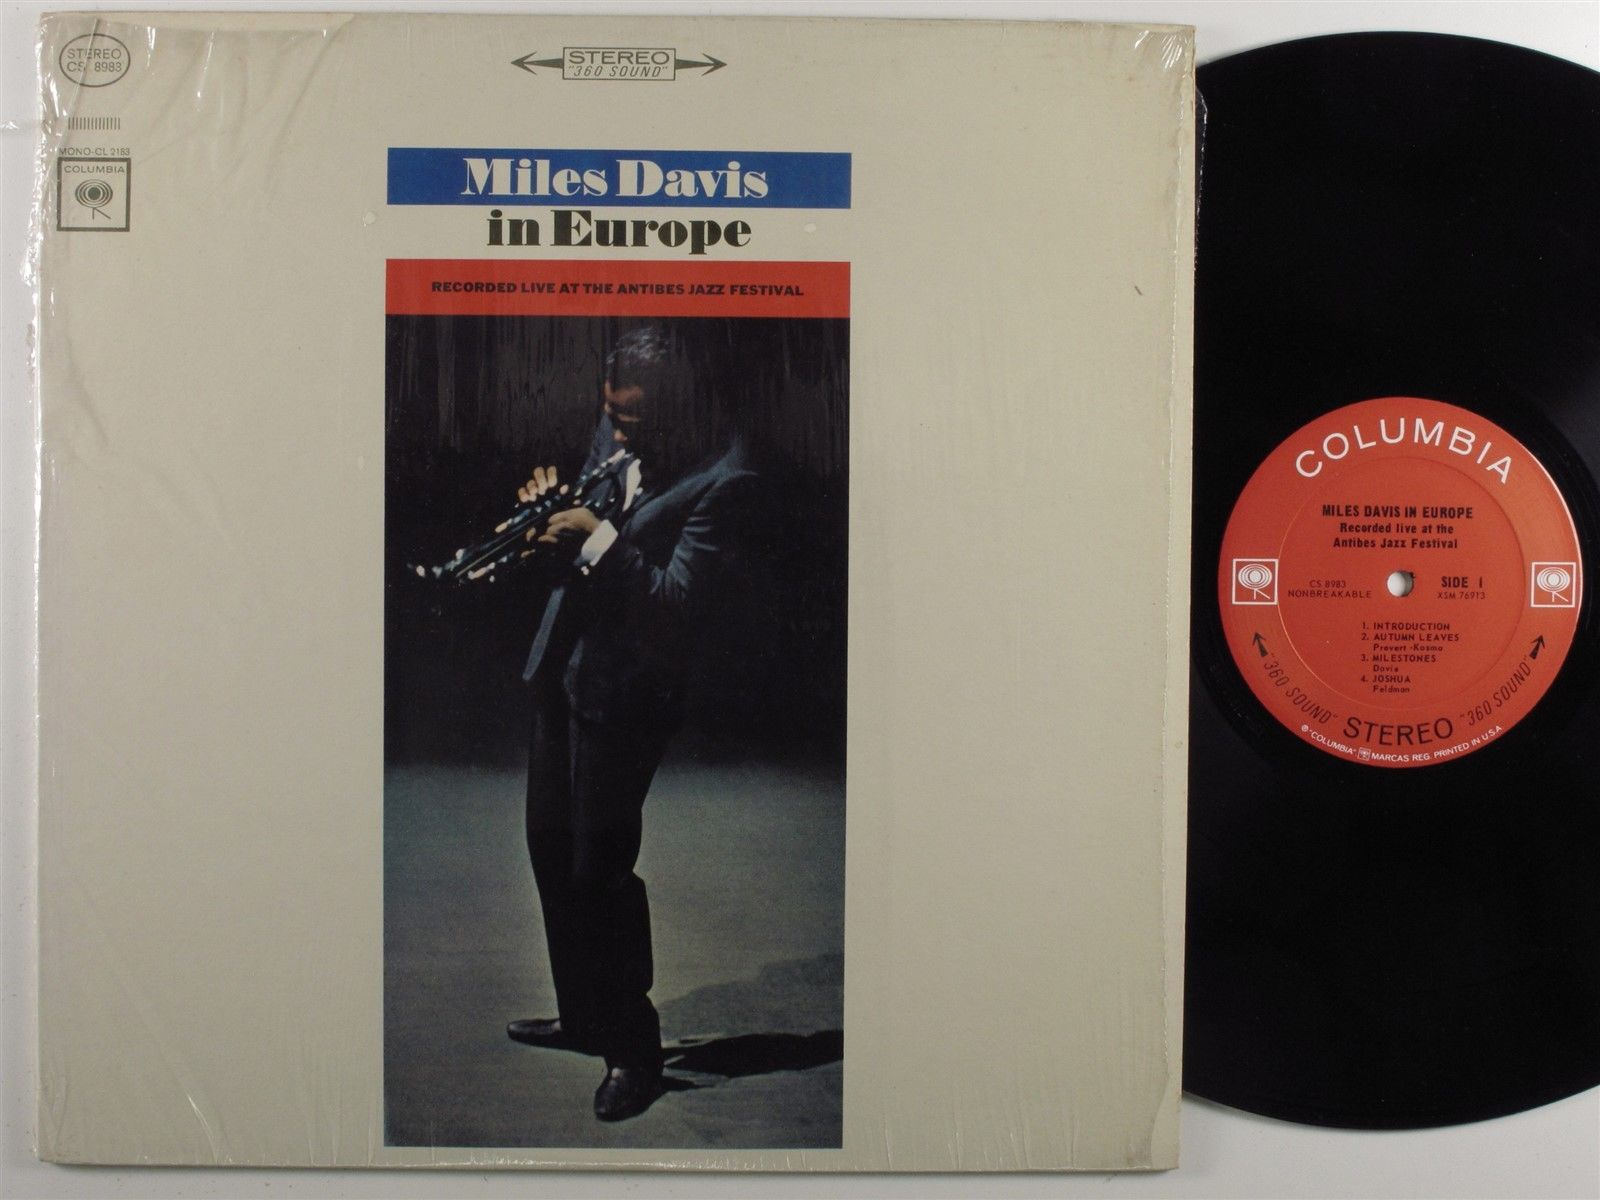 MILES DAVIS In Europe COLUMBIA LP VG++ stereo 2-eye SHRINK